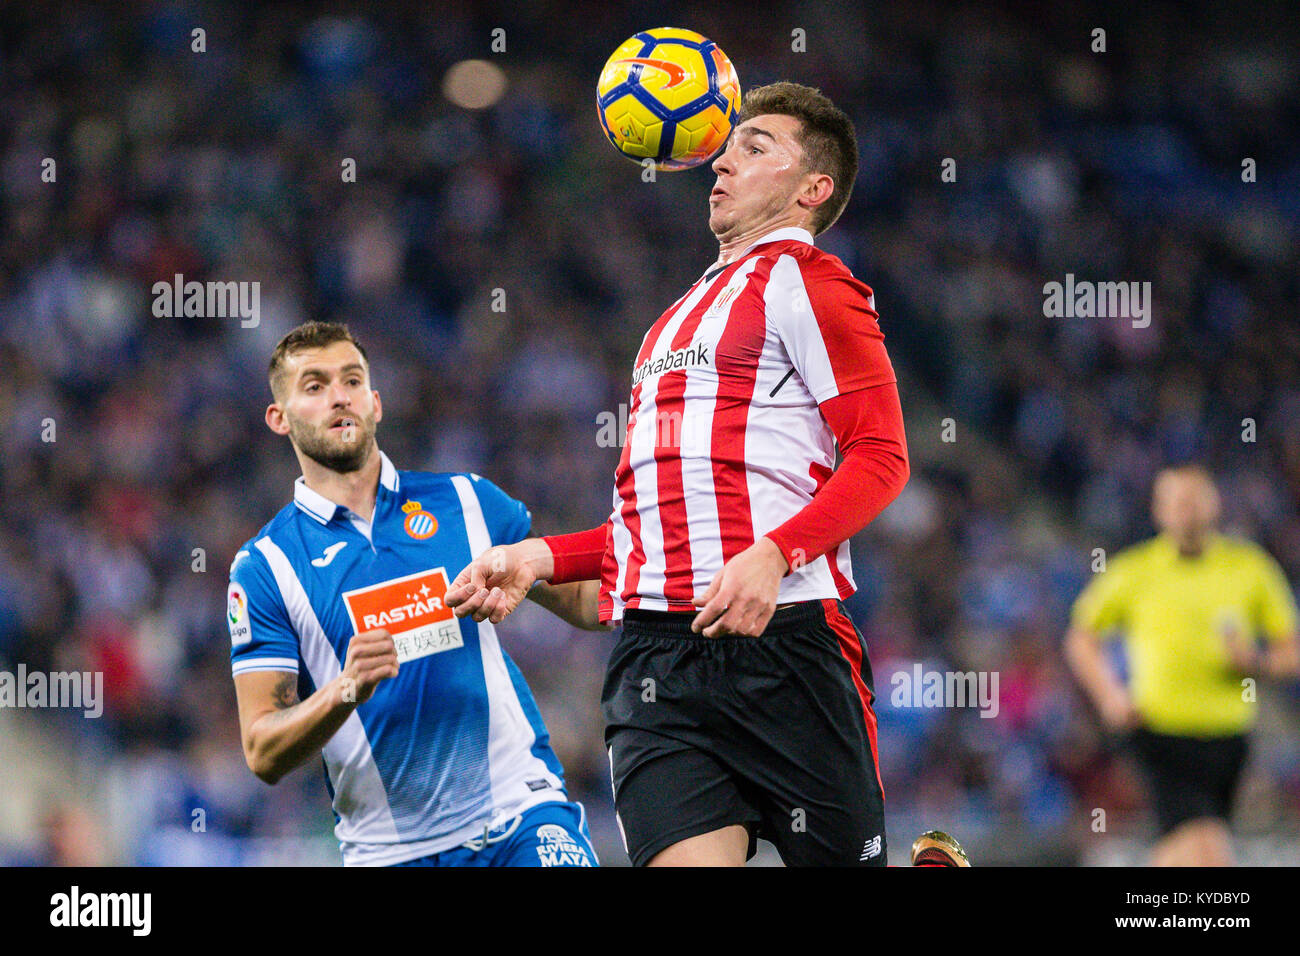 Athletic Club defender Aymeric Laporte (4) during the match between RCD Espanyol v Athletic Club, for the round - Stock Image